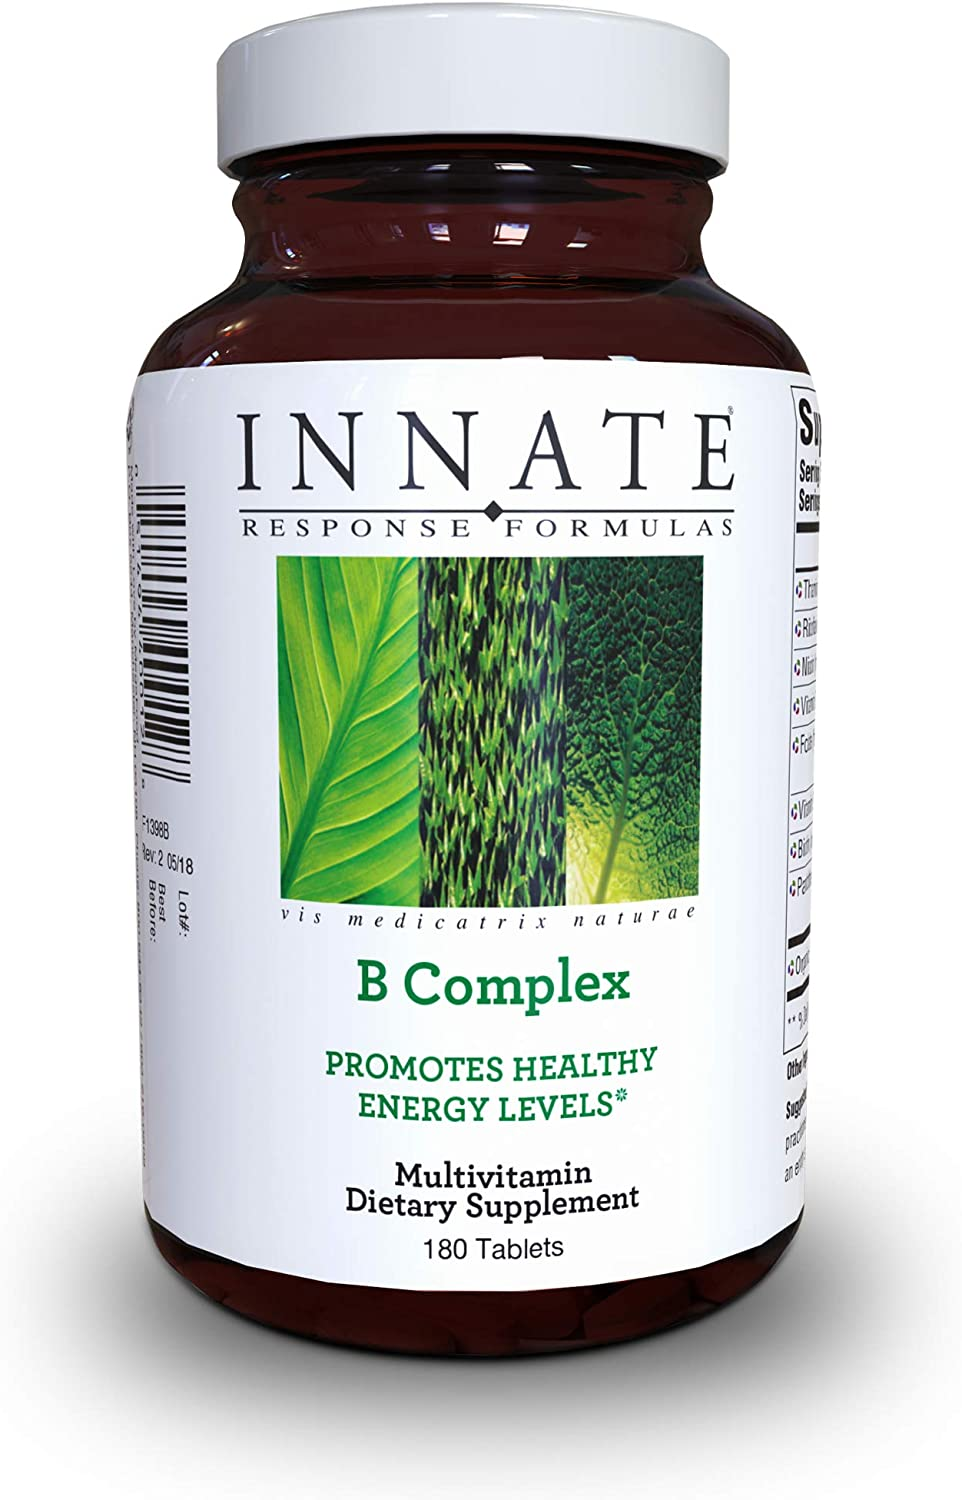 INNATE Response Formulas – B Complex, Promotes Energy and Health of The Nervous System, 180 Tablets